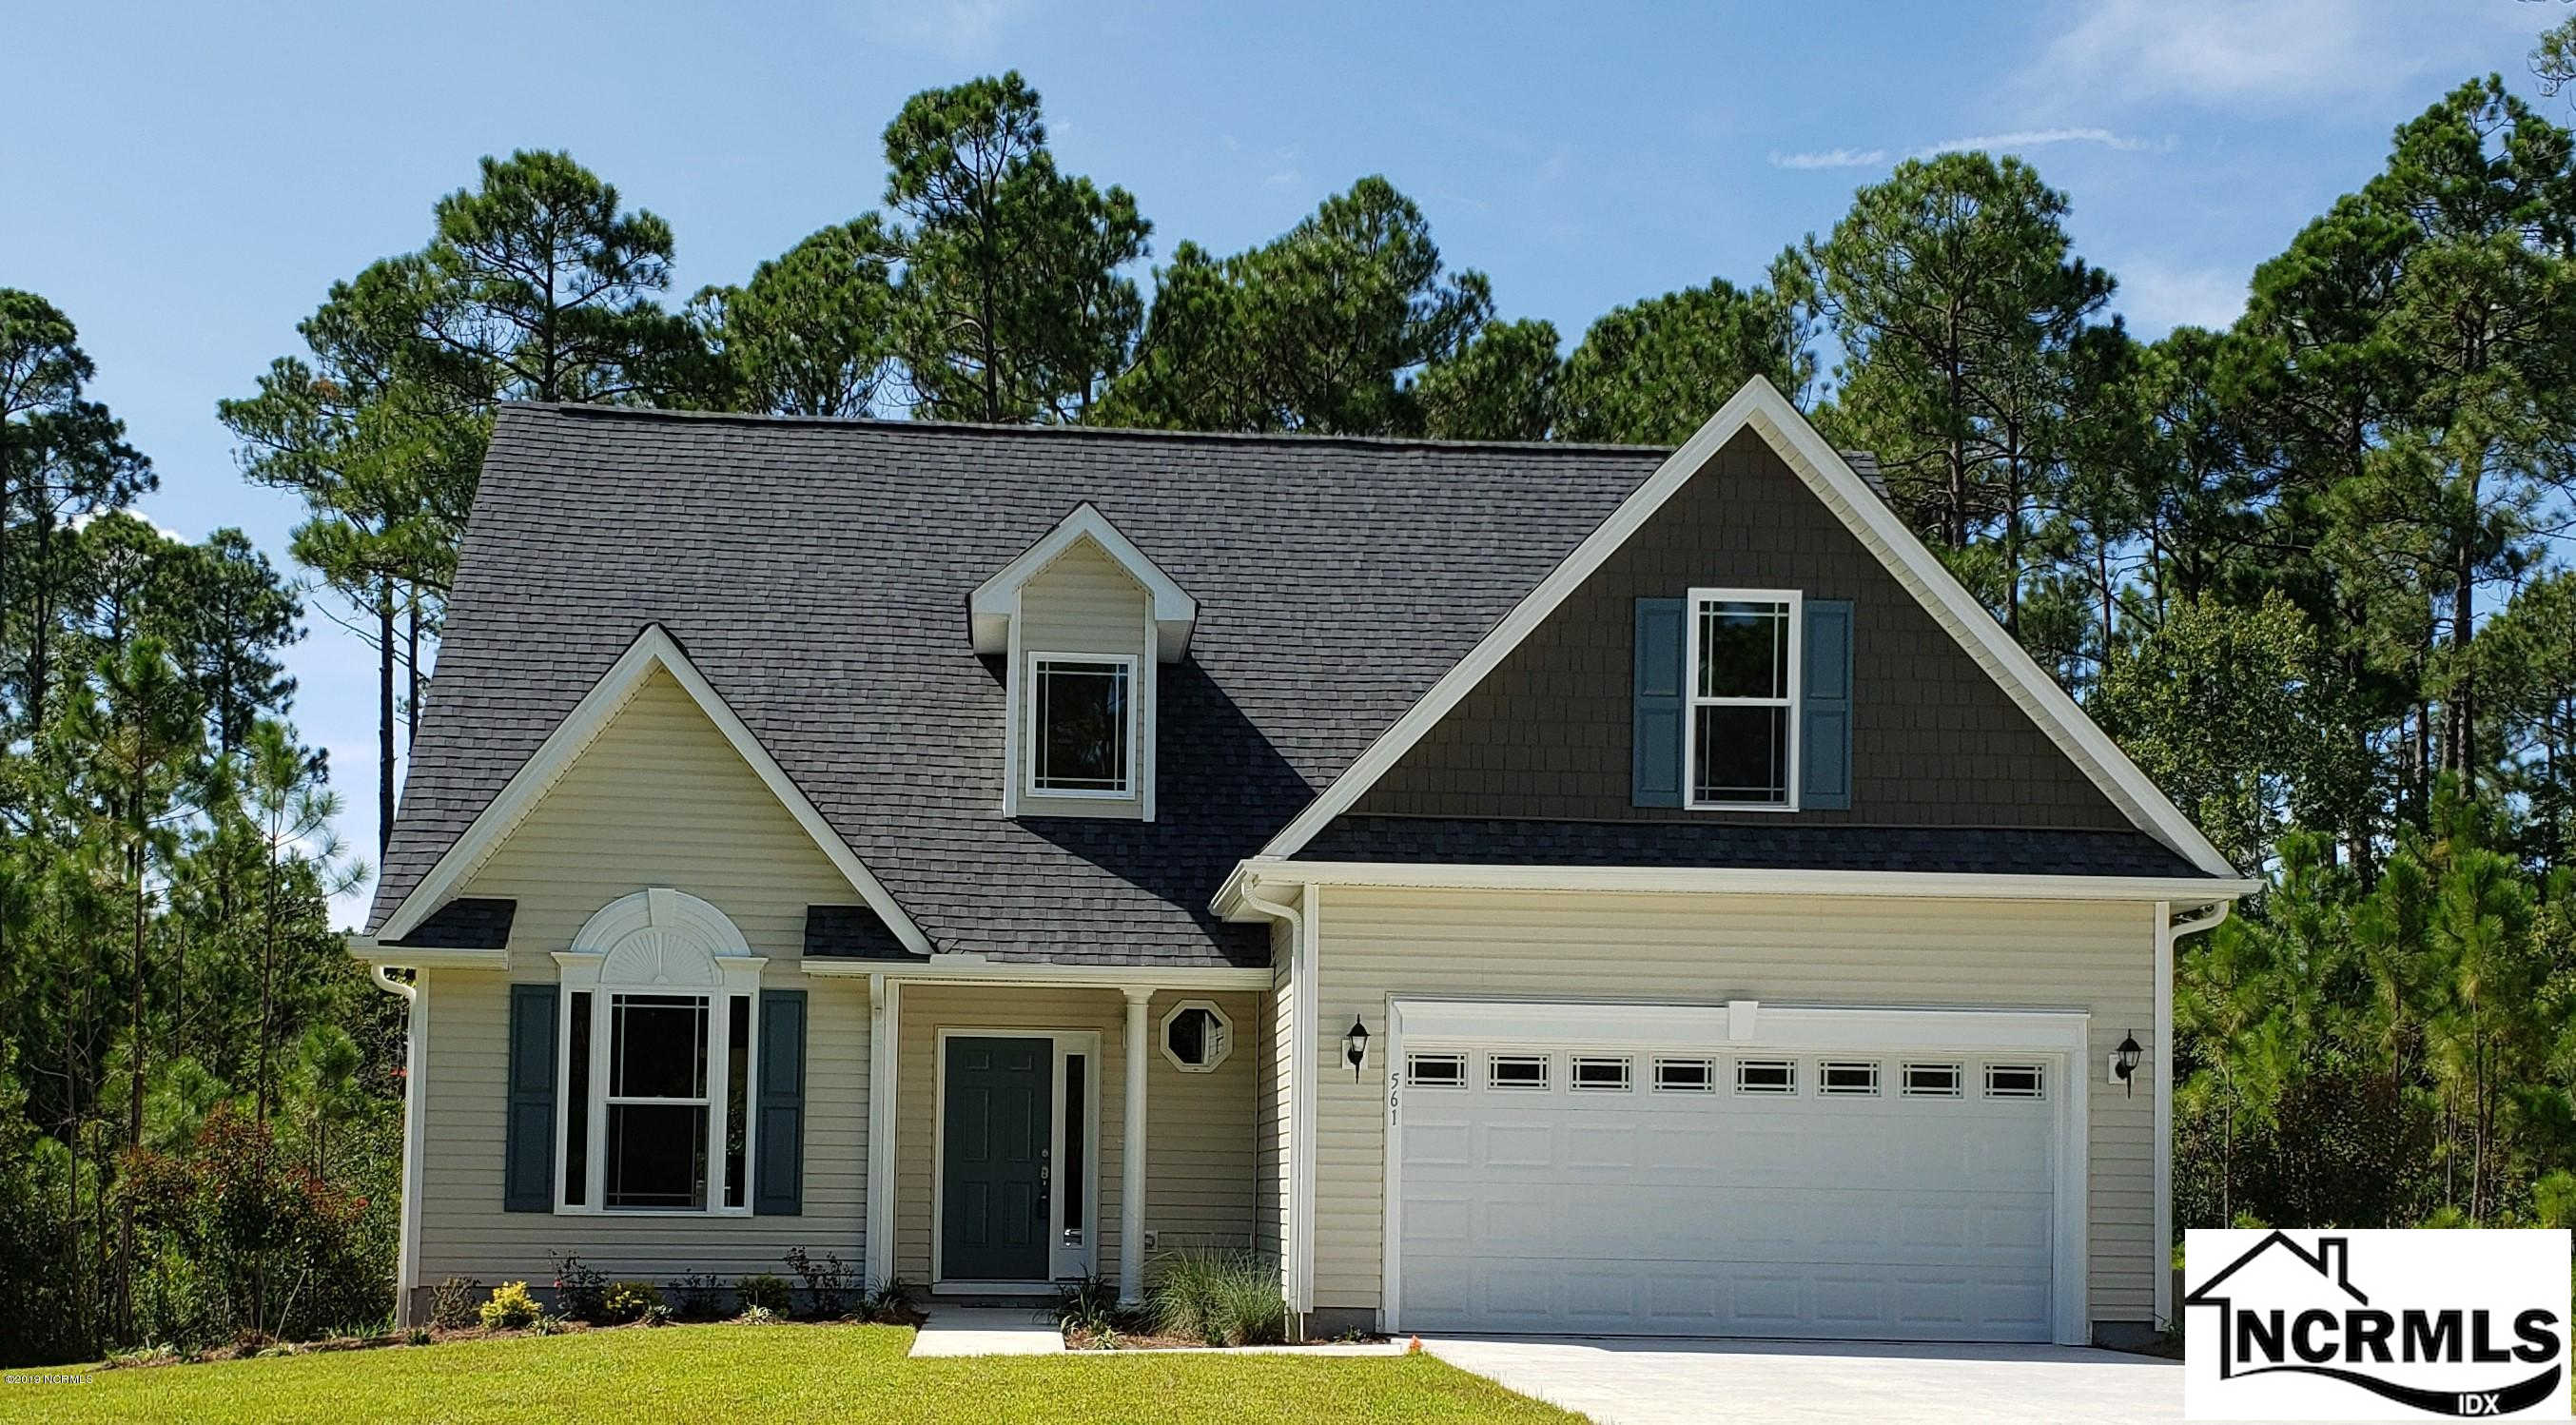 561 Greenock Court, Shallotte, NC 28470 now has a new price of $247,460!